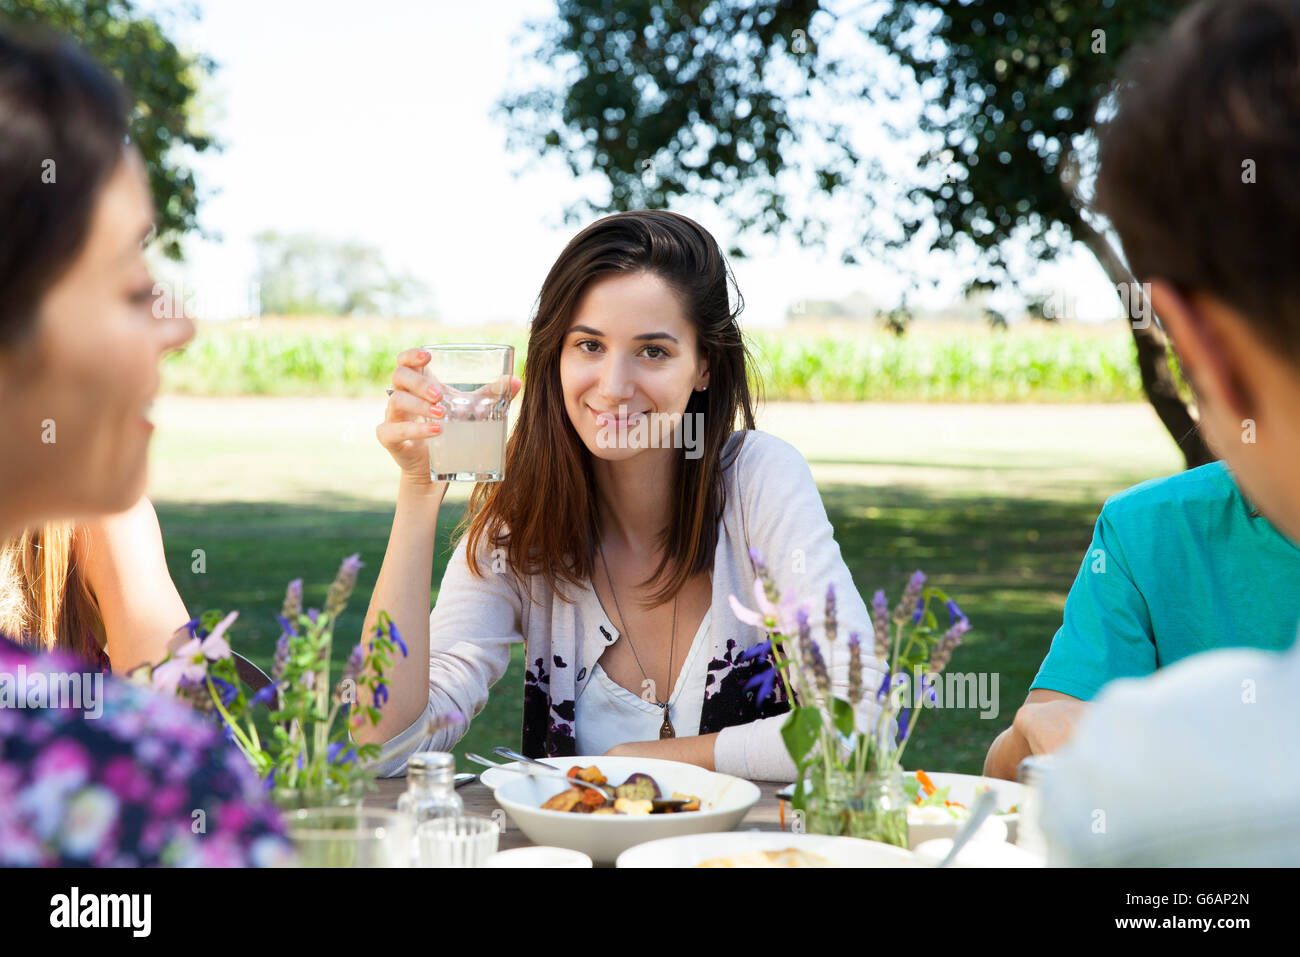 Woman enjoying meal with friends Stock Photo